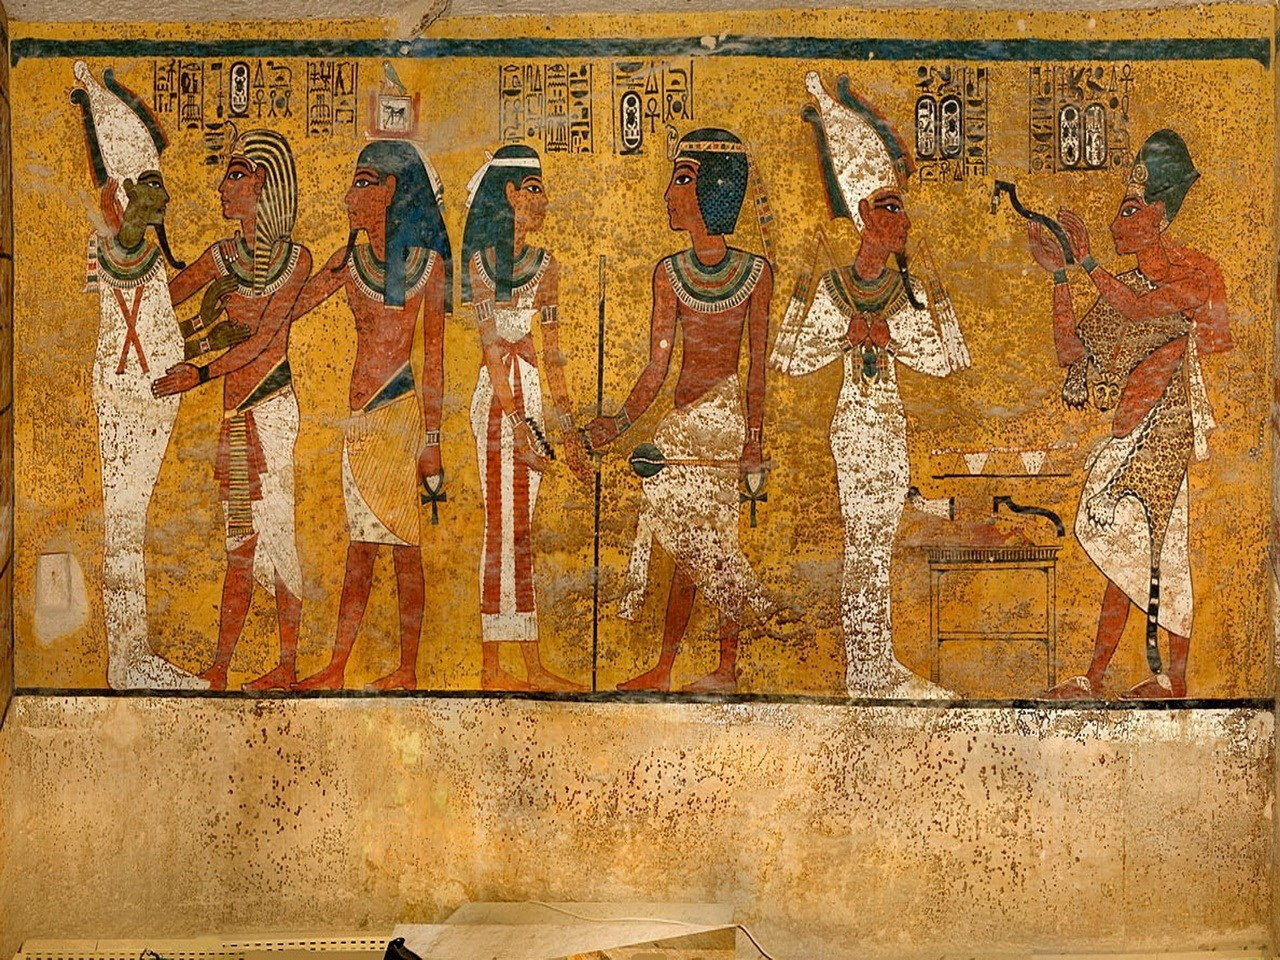 The north wall of the tomb